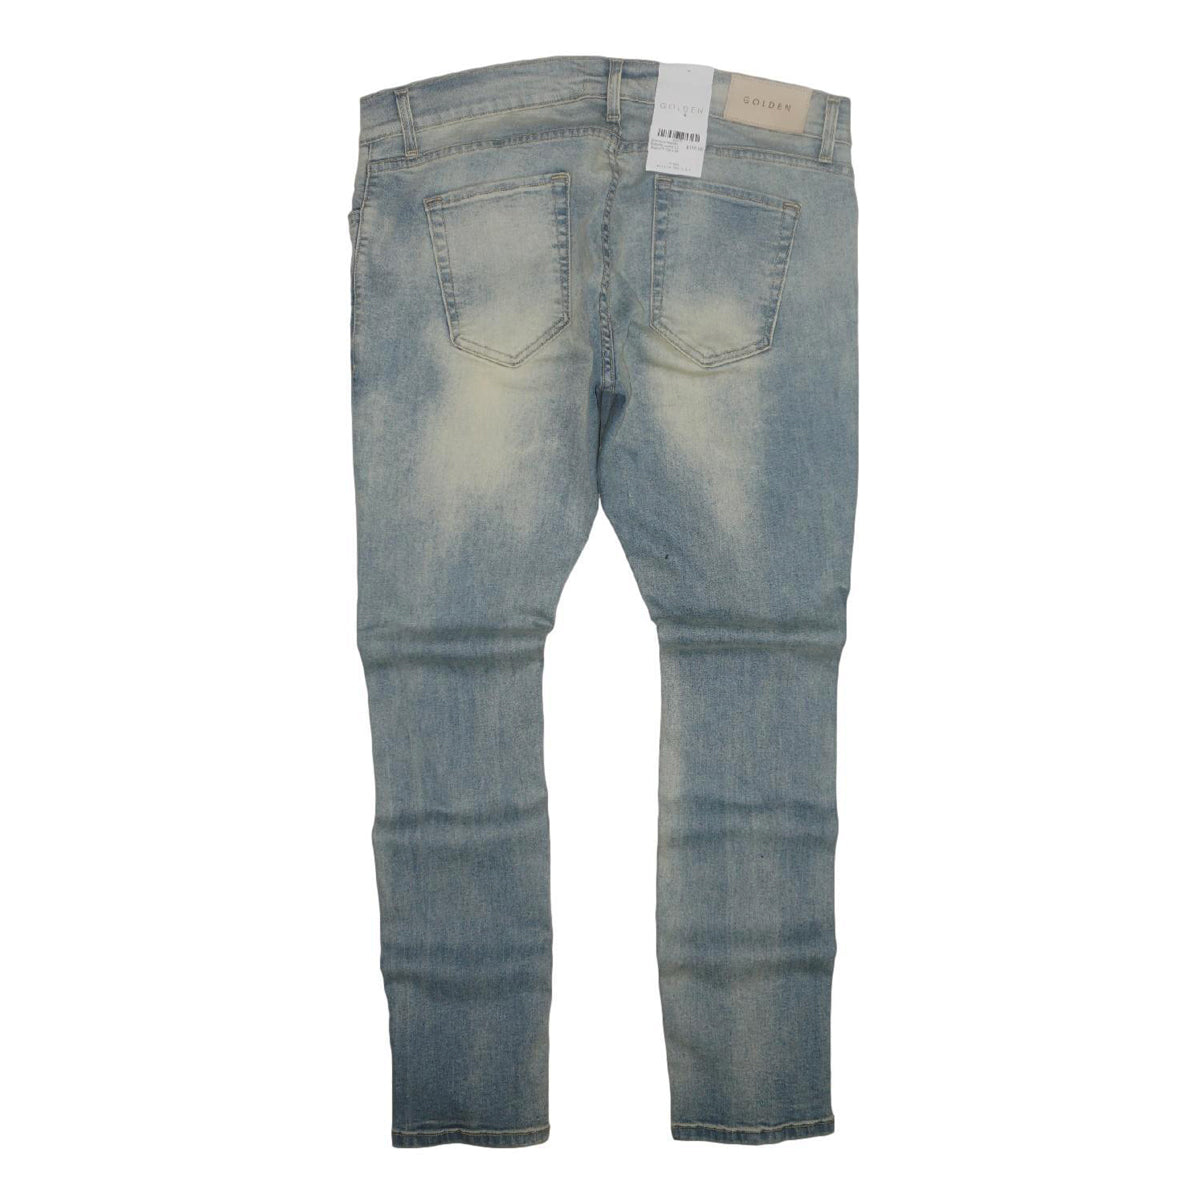 Signature Rebirth Butterfly Jeans (Lt. Blue) /C7